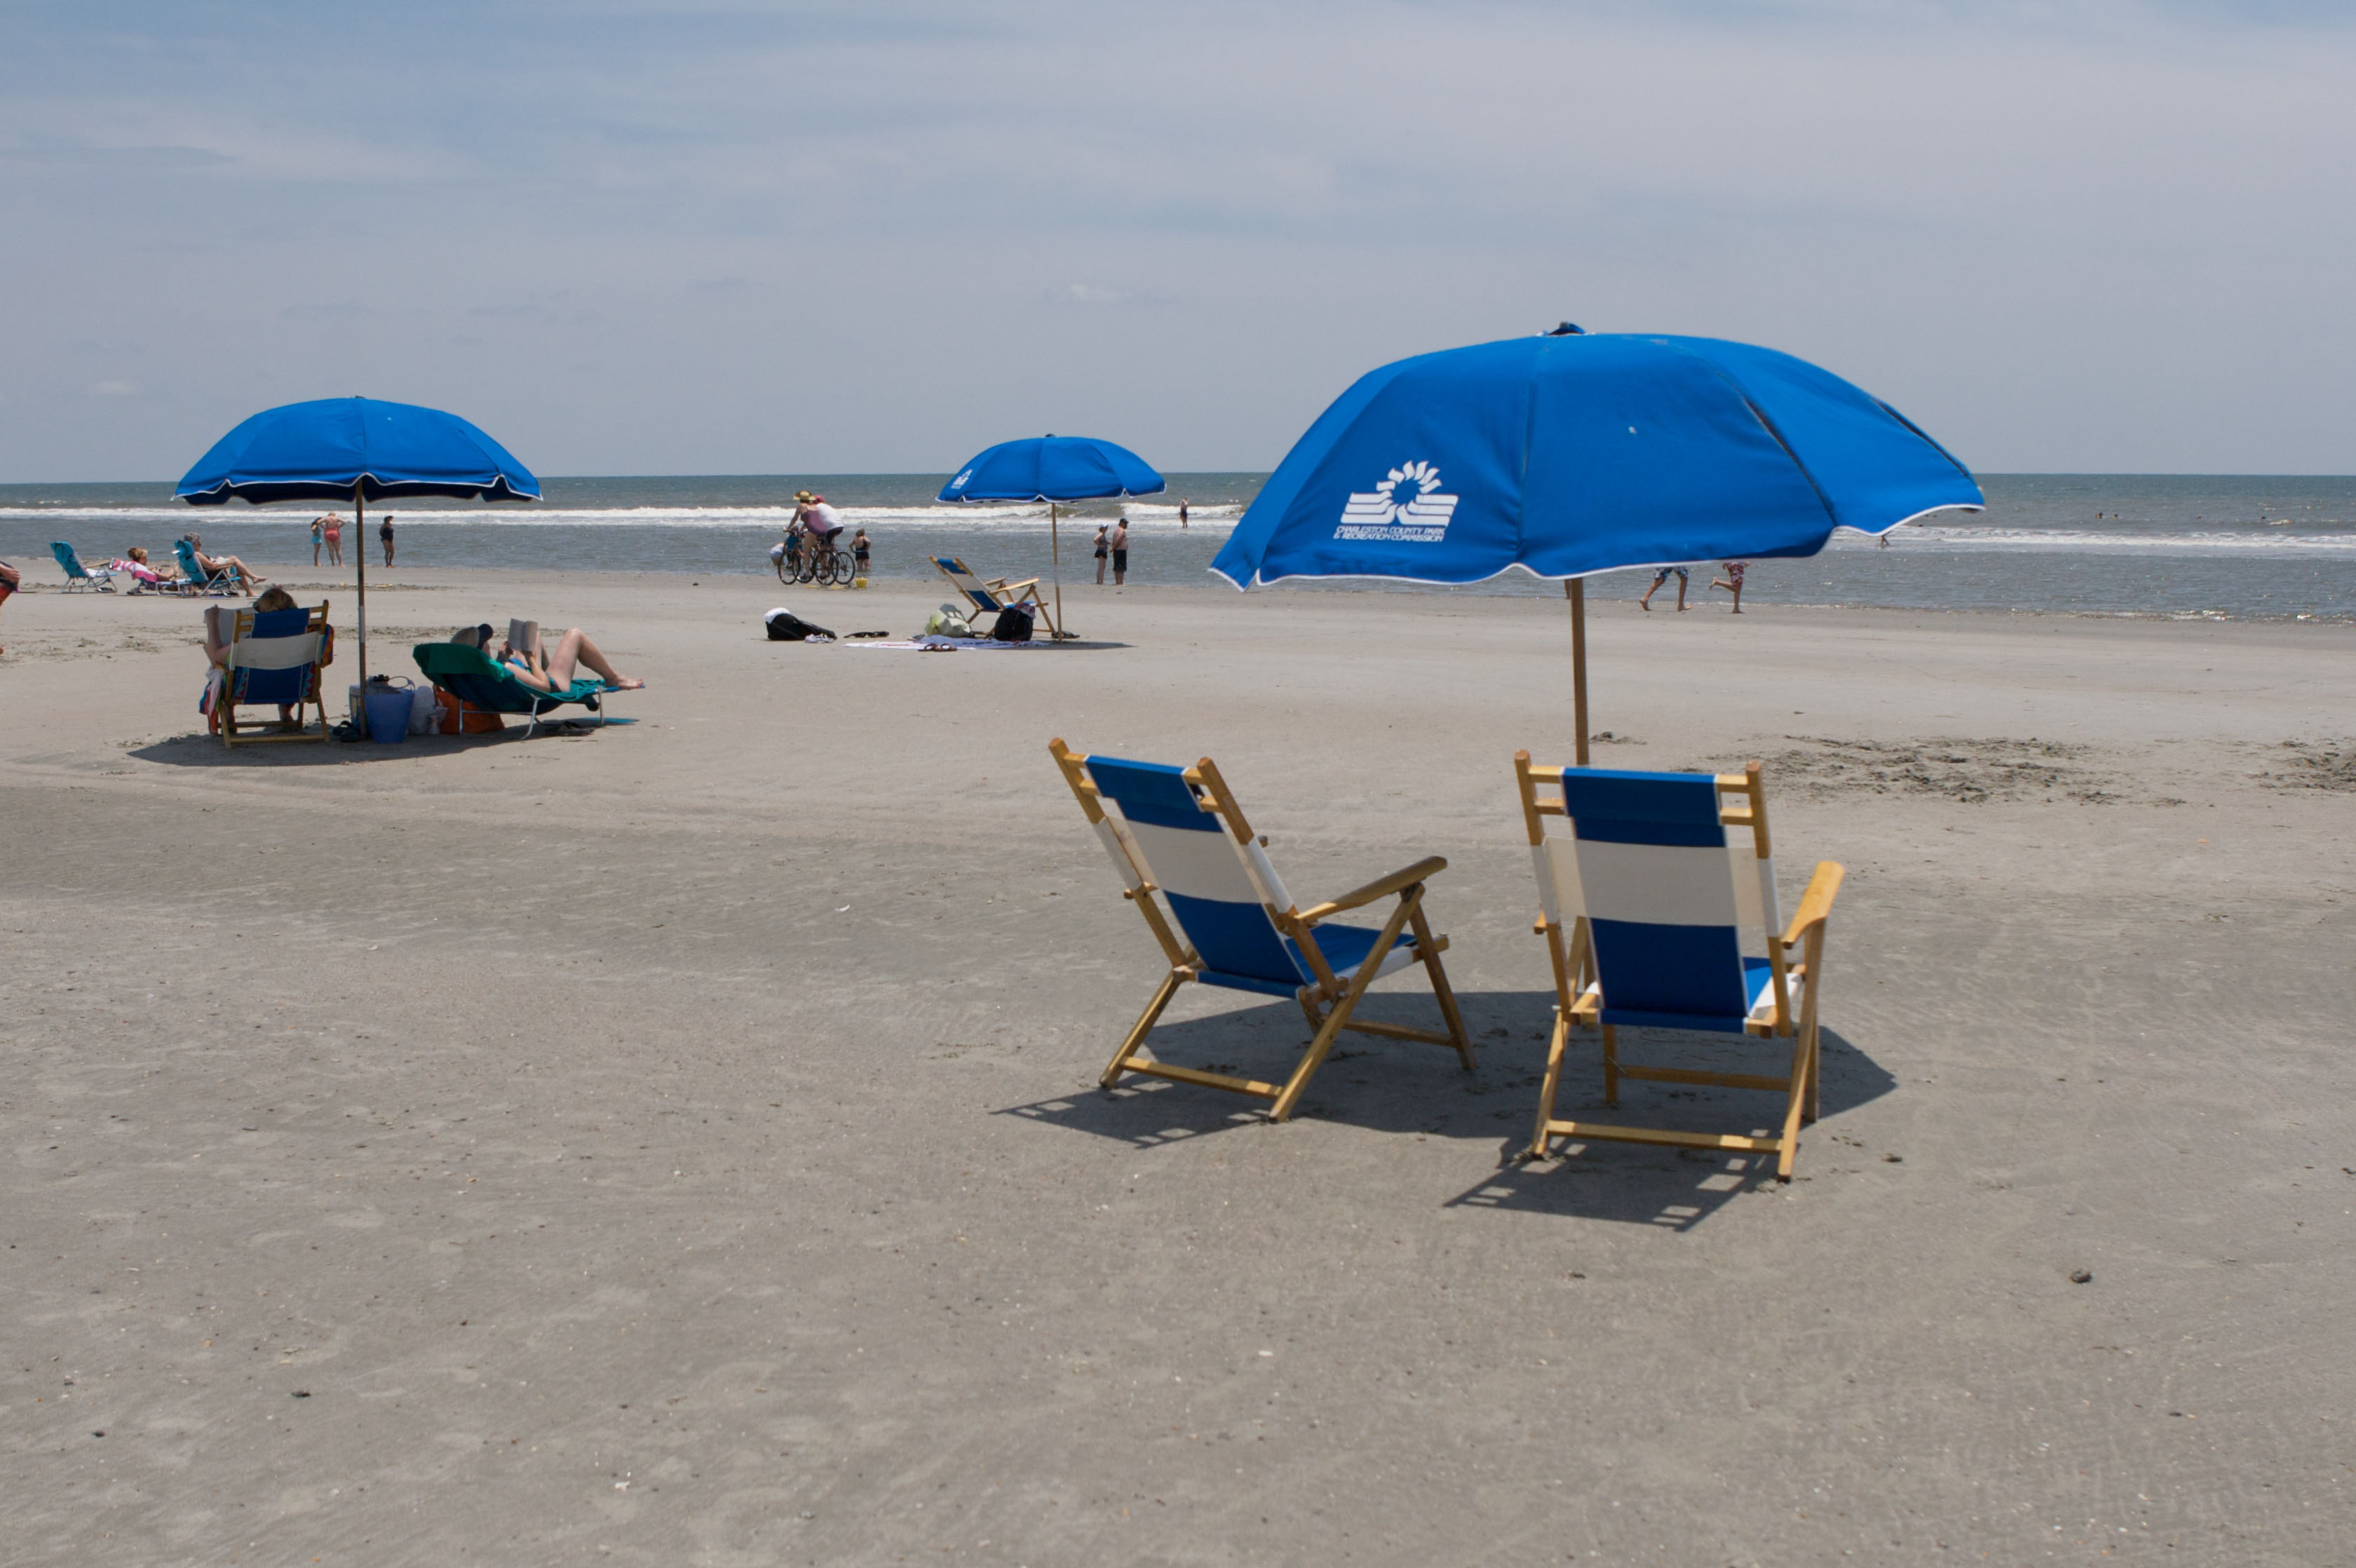 Beach chair & umbrellas rentals are available seasonally at all 3 beach parks.